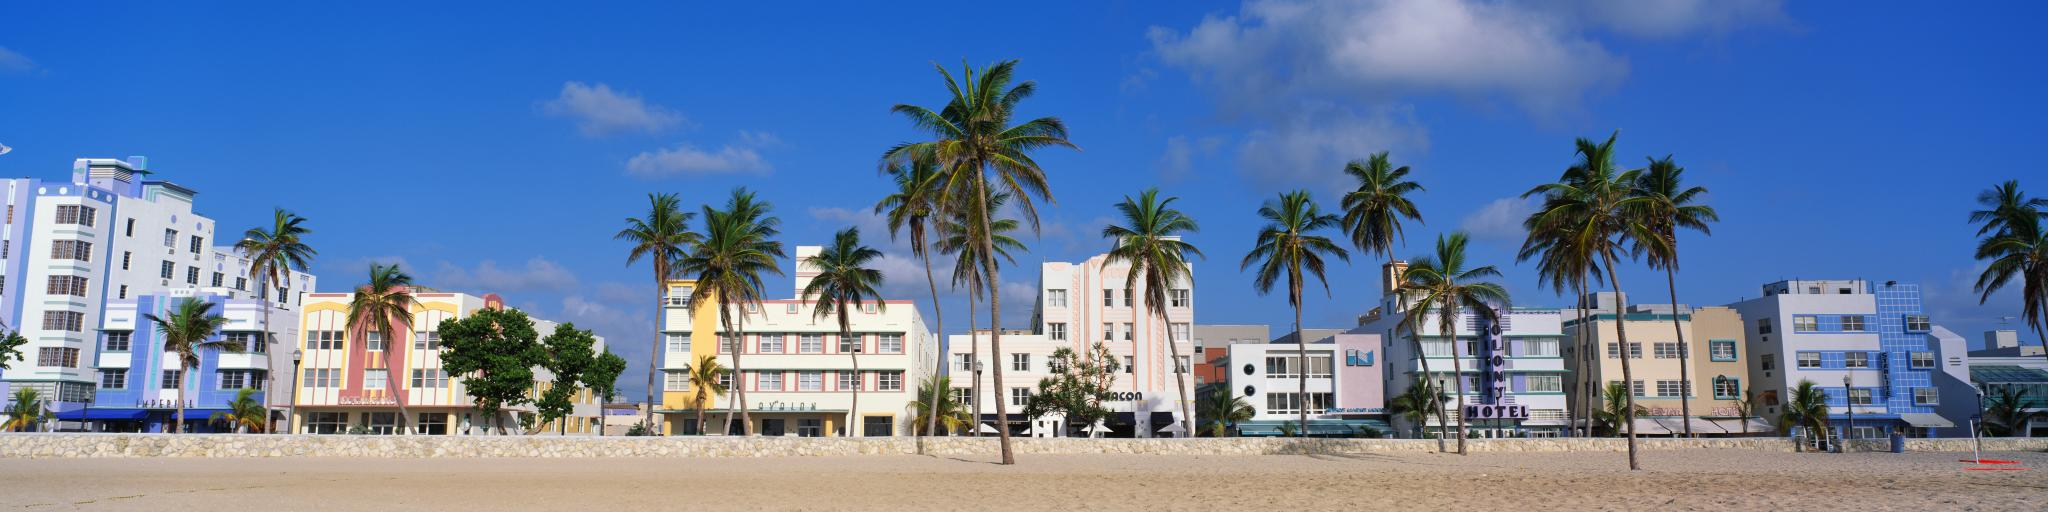 Art Deco buildings and palms growing along South Beach, Miami